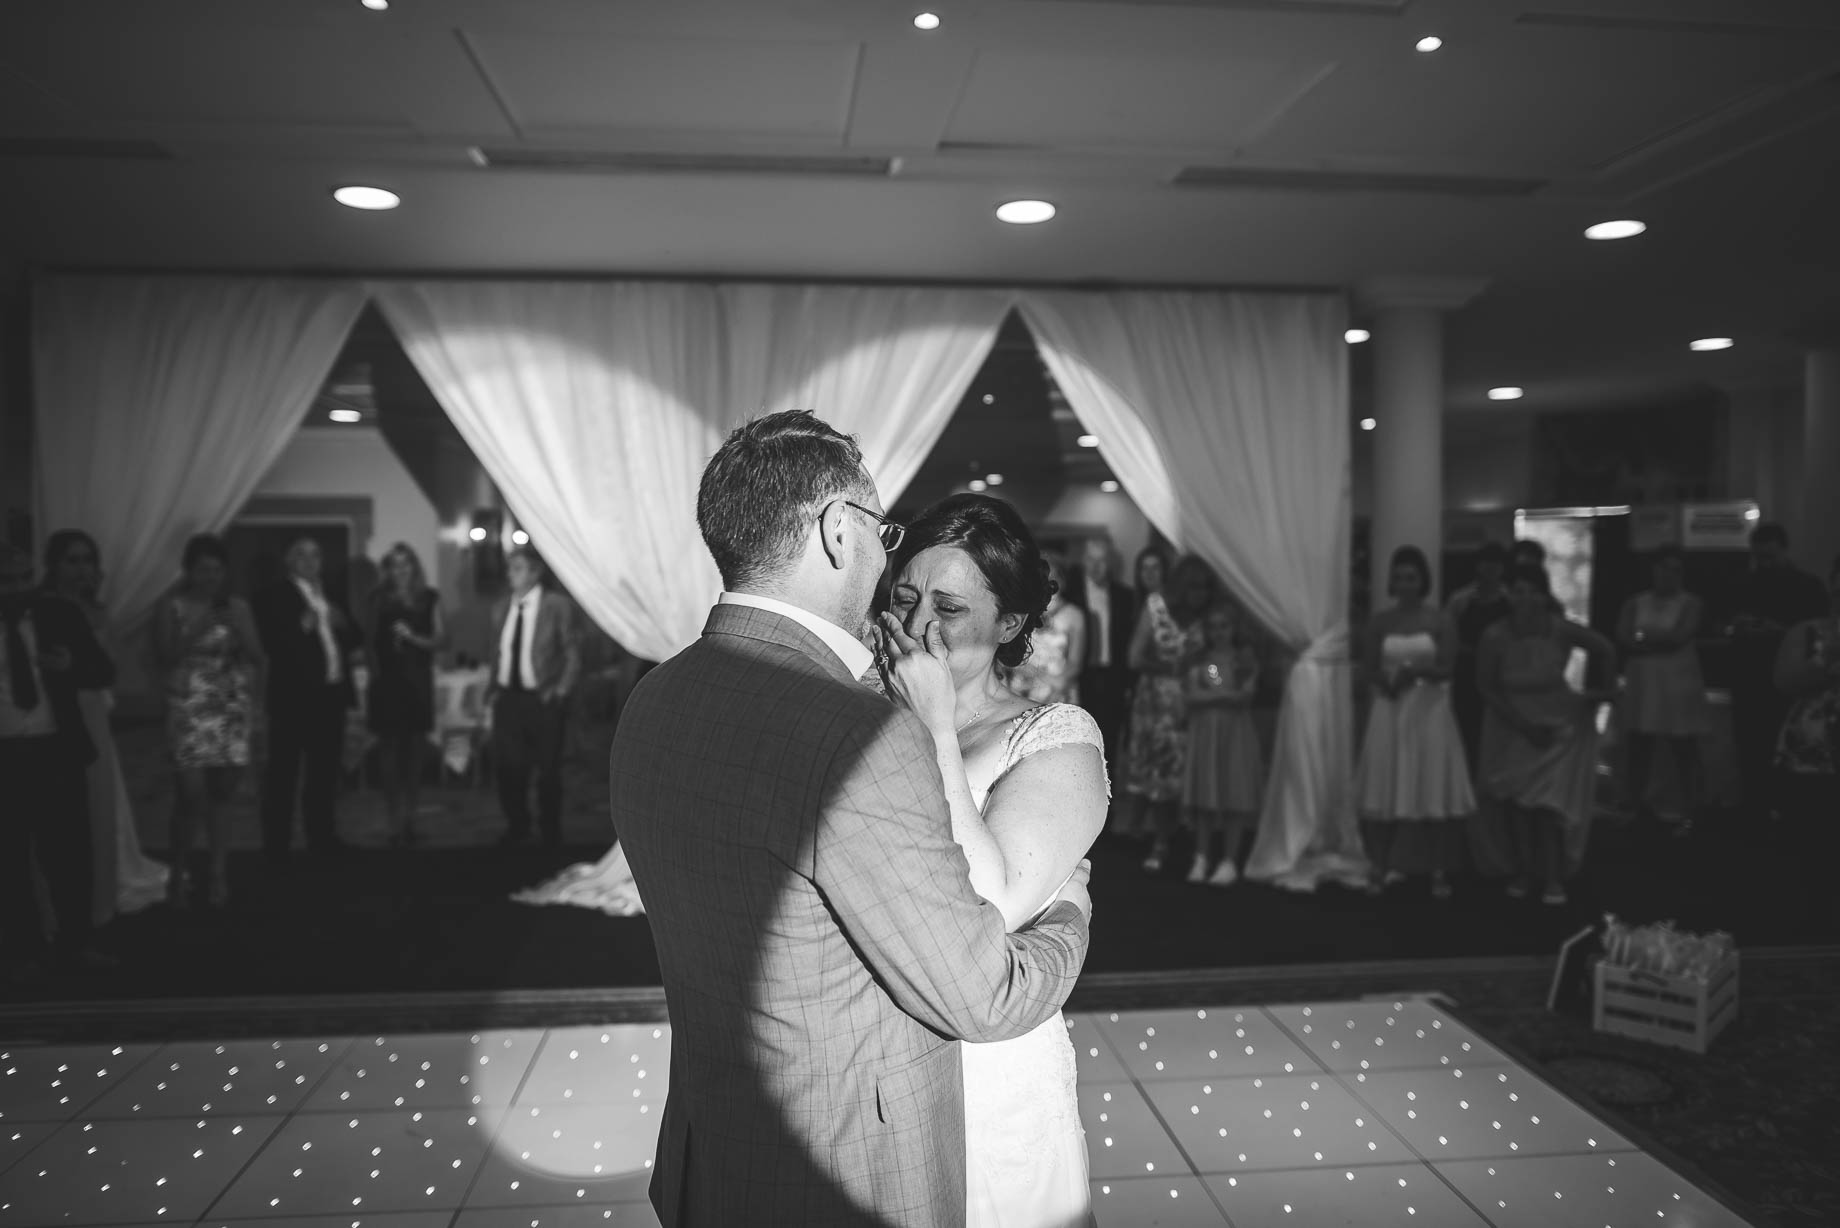 Luton Hoo wedding photography by Guy Collier Photography - Lauren and Gem (171 of 178)